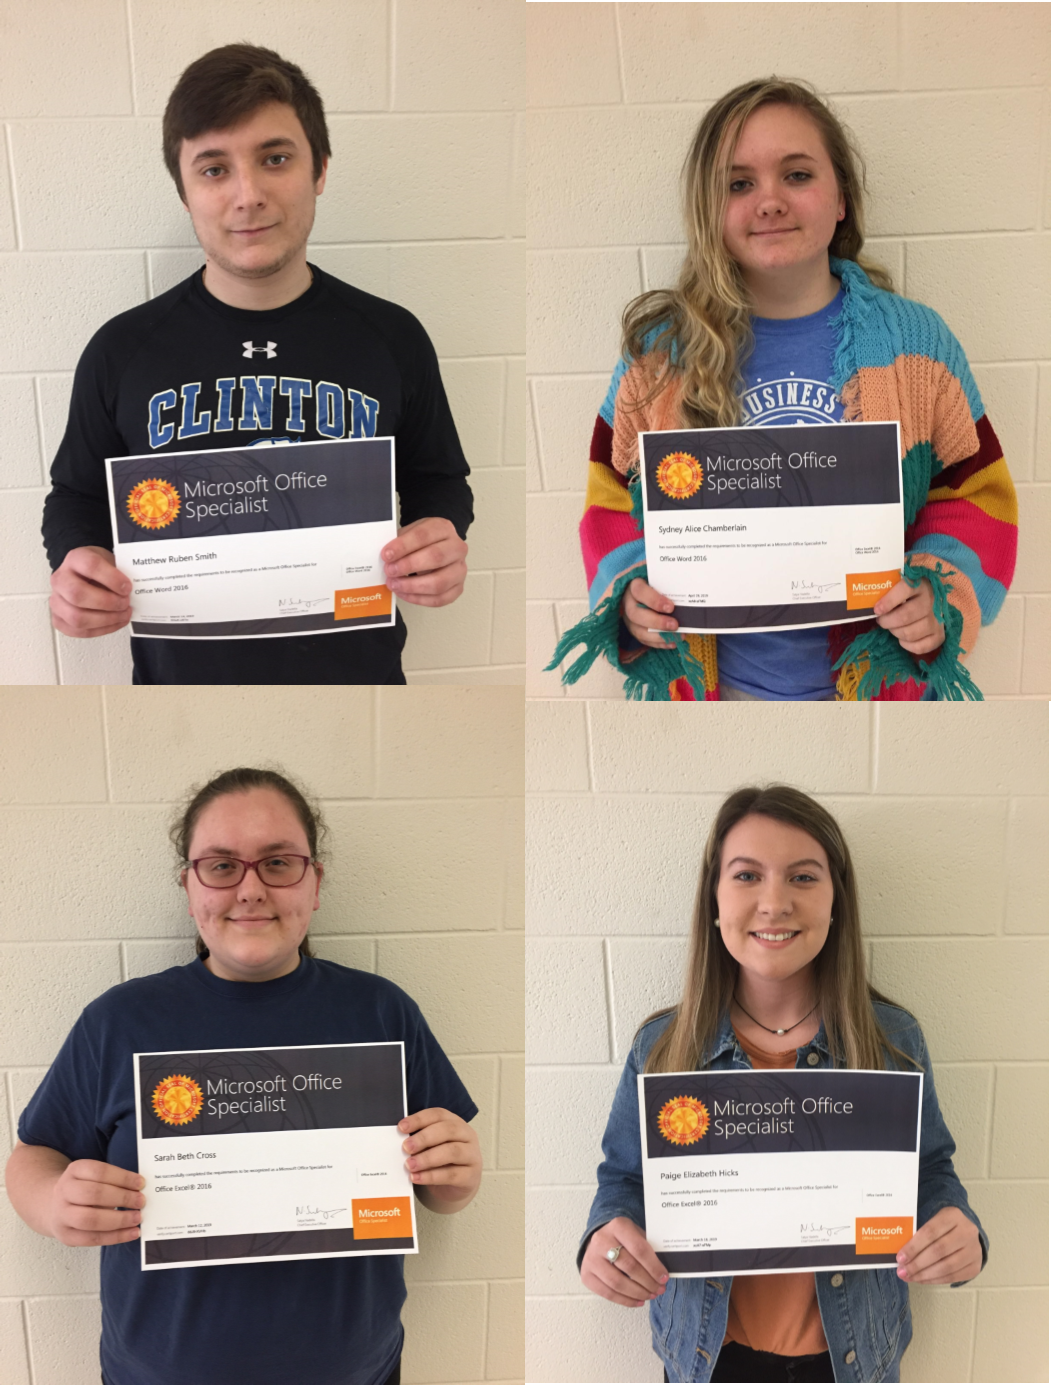 The spring semester concludes with four more students passing Microsoft Office Specialist (MOS) certifications in Word, Excel, and PowerPoint at Clinton County Area Technology Center.